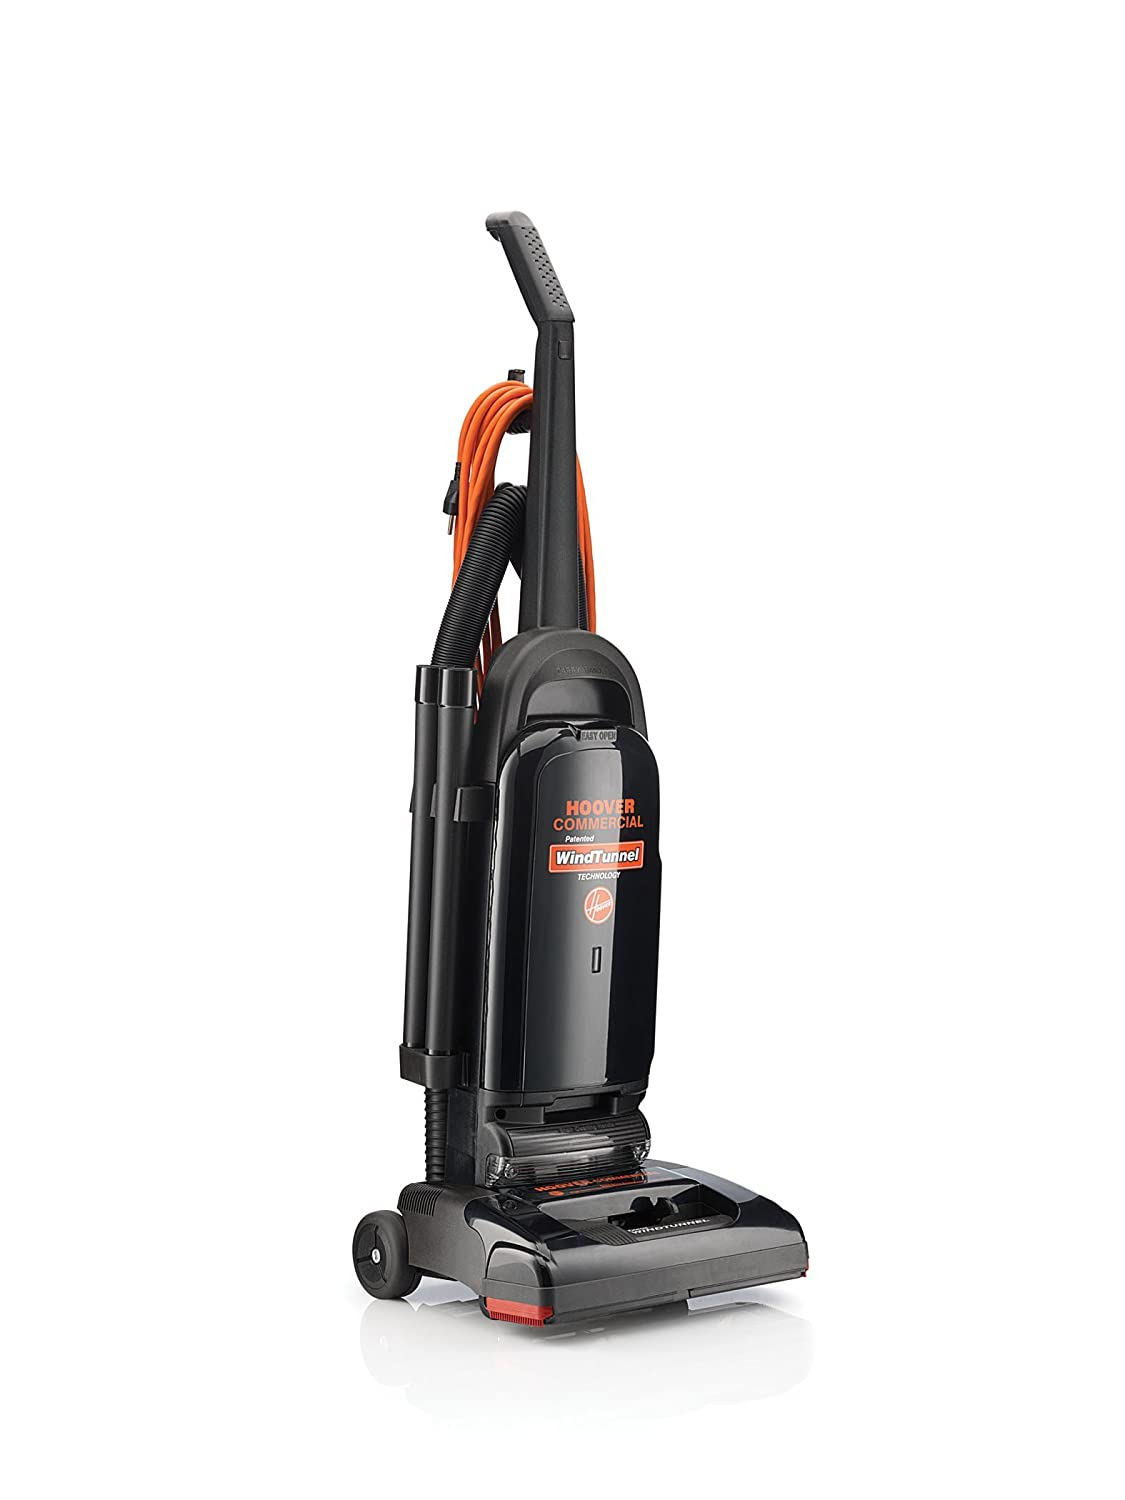 Hoover Commercial WindTunnel Upright Vacuum C1703-900